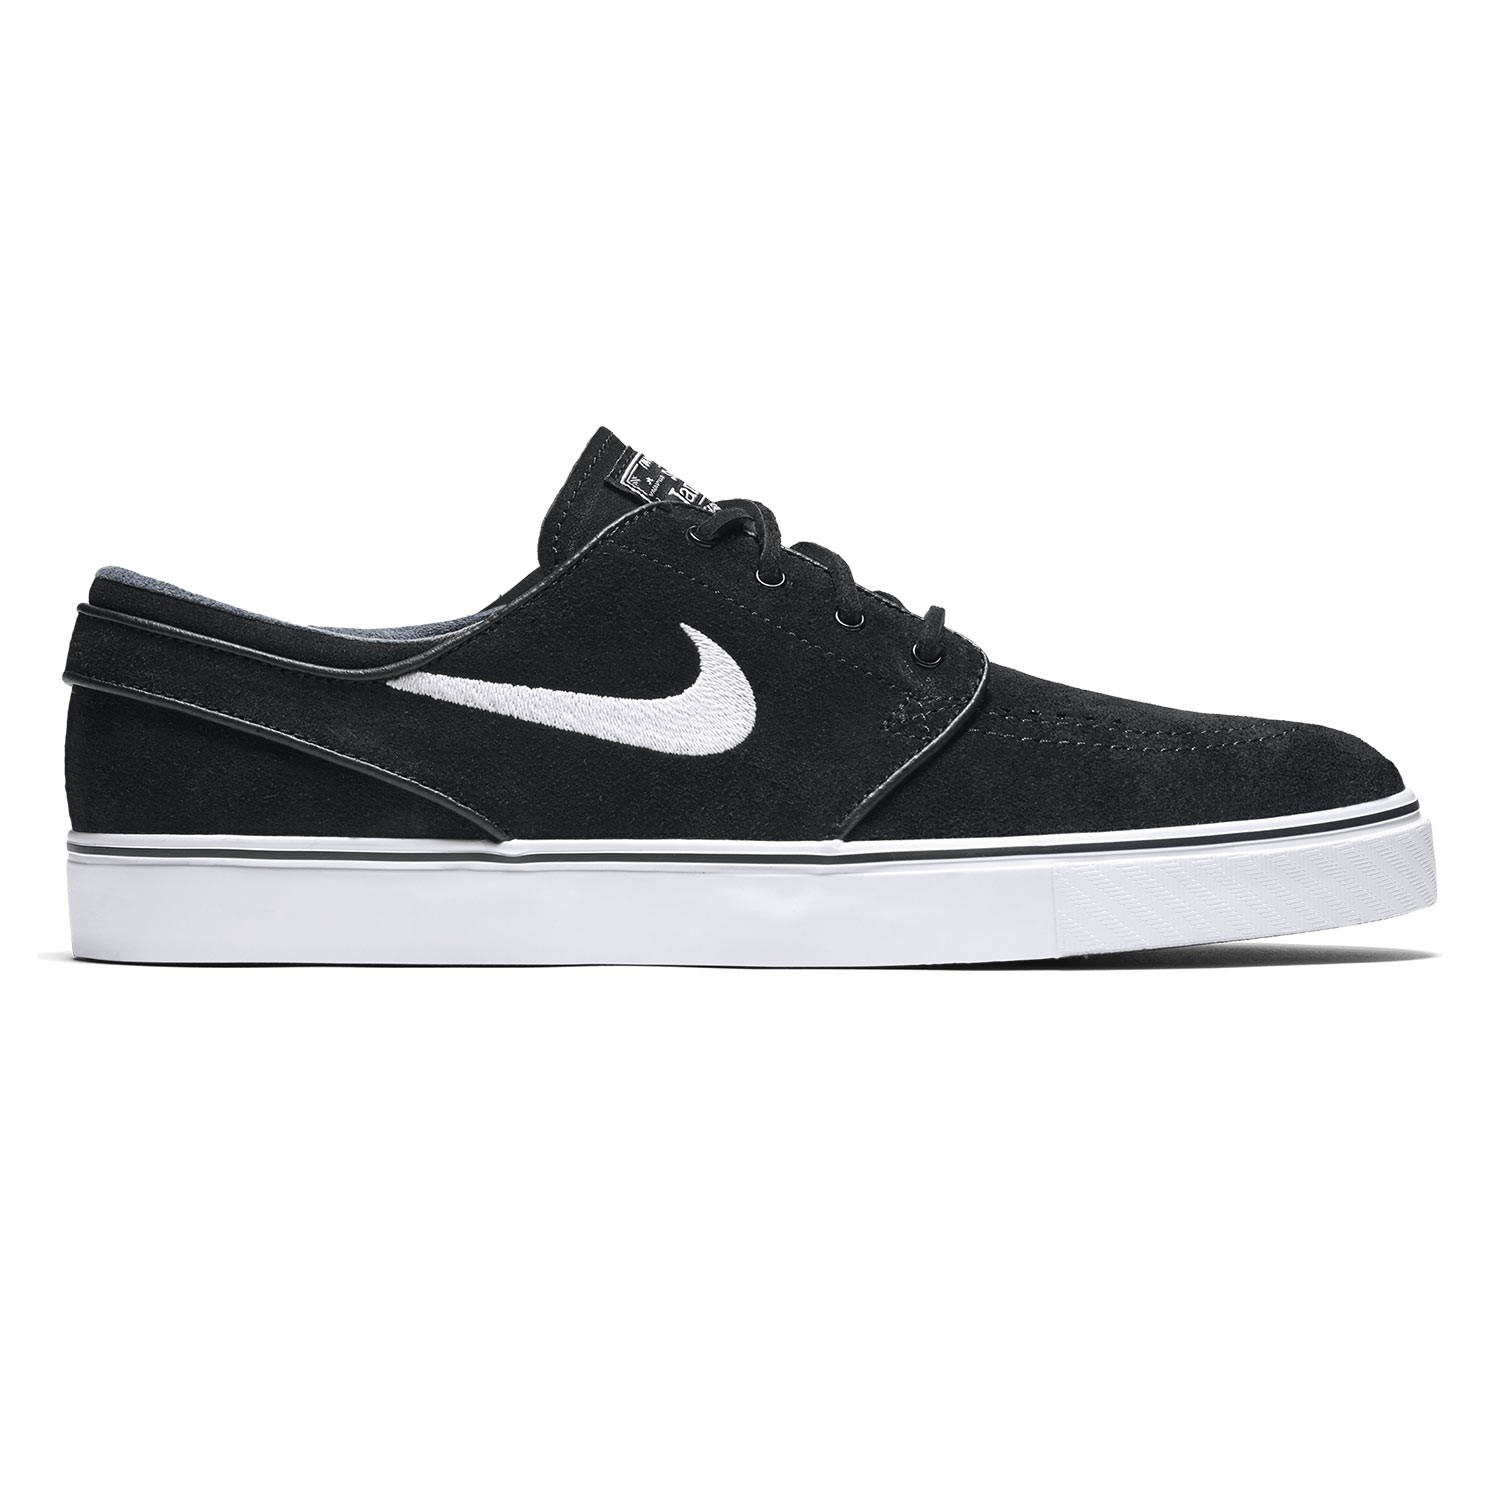 Tenisky Nike SB Zoom Stefan Janoski Og black/white-gum light brown